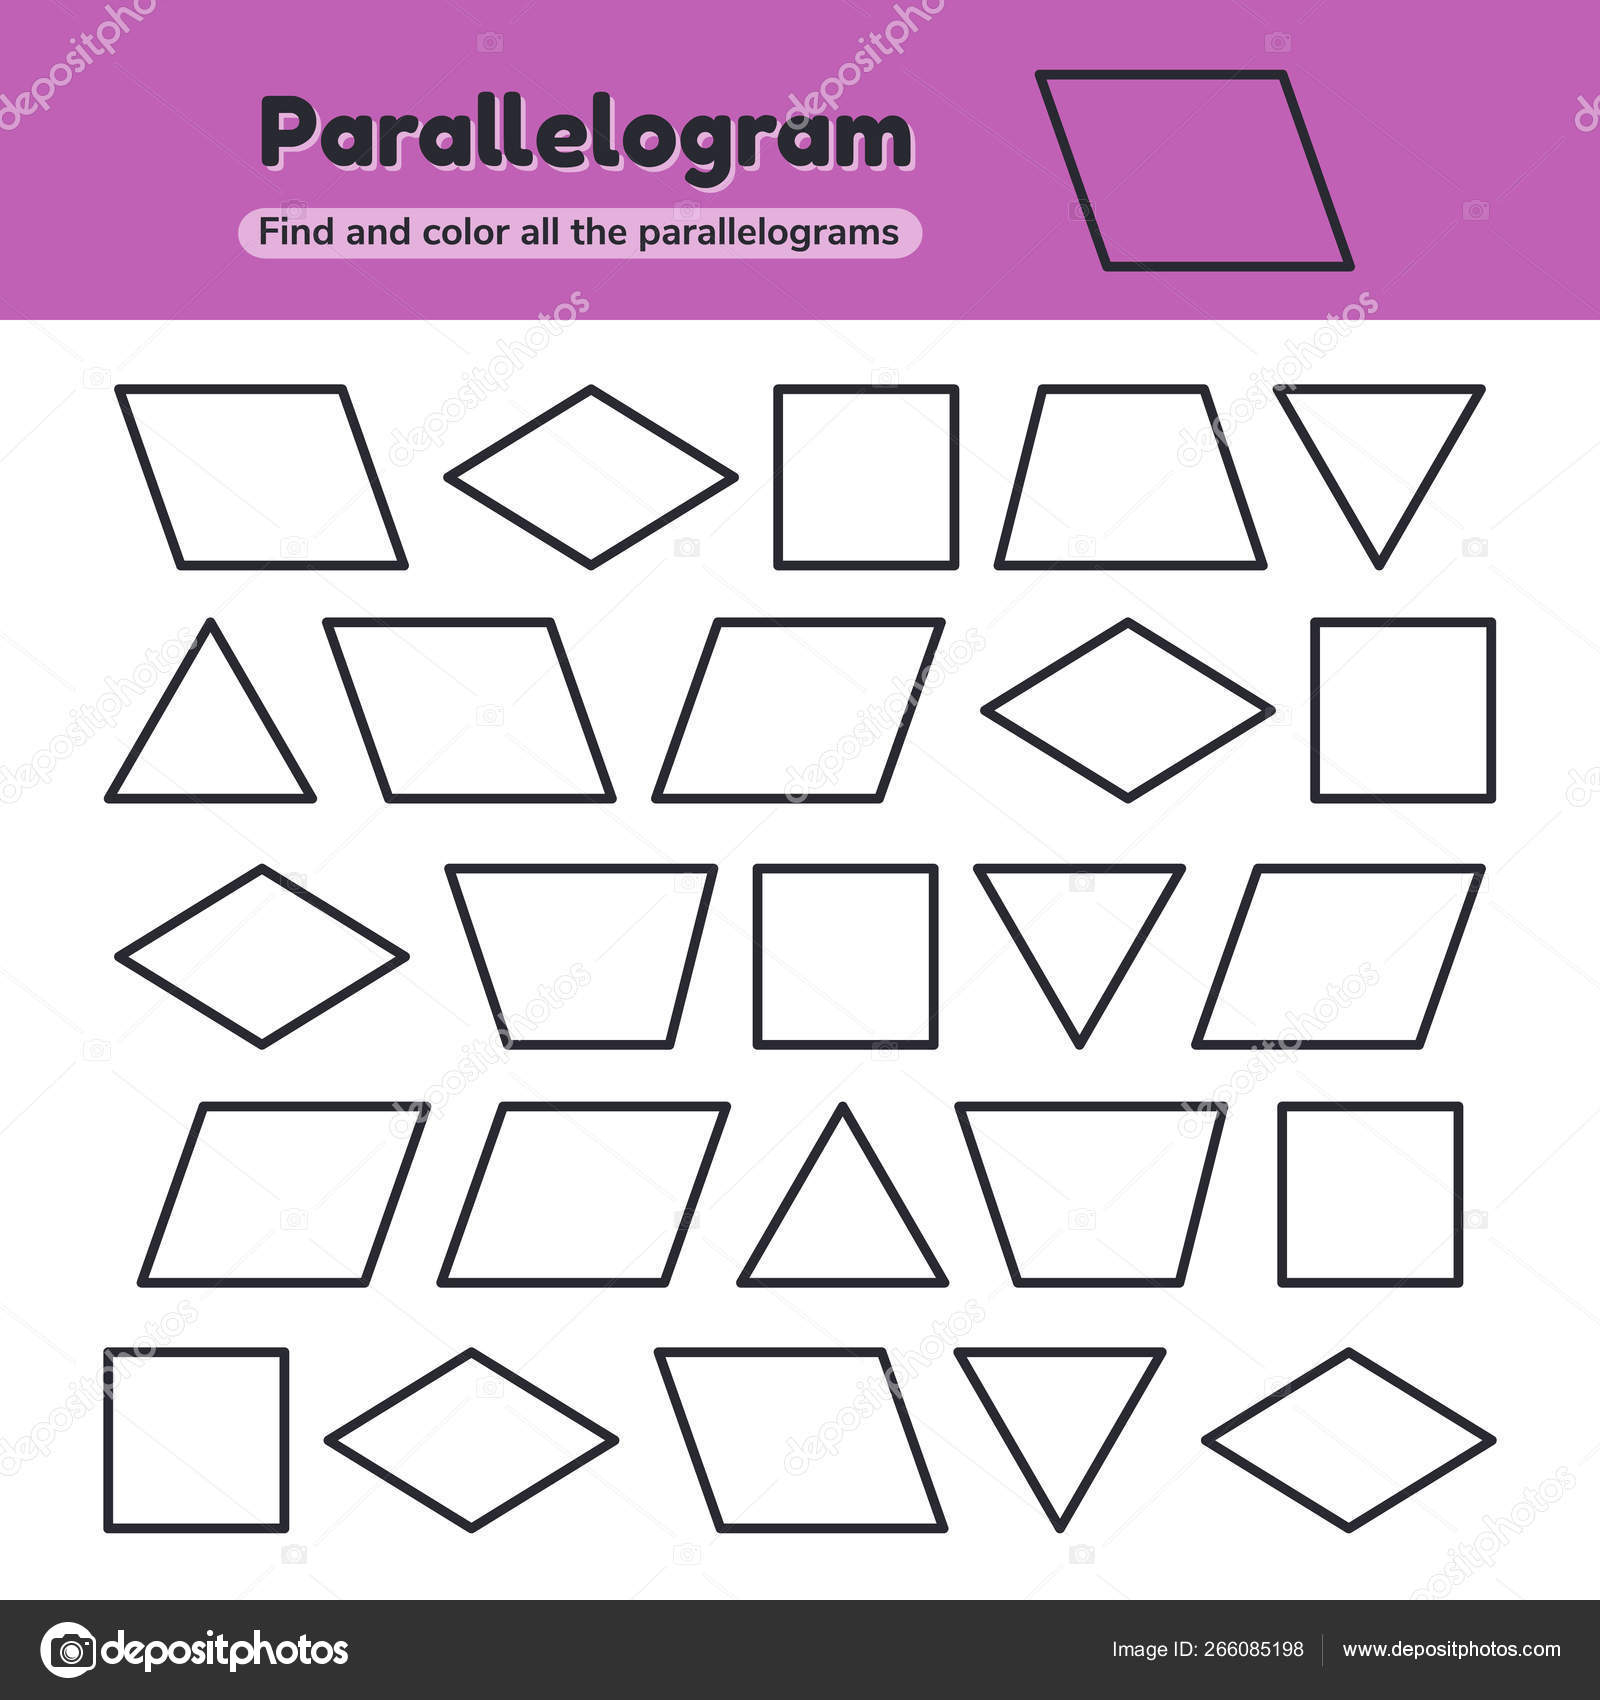 Educational Worksheet For Kids Kindergarten, Preschool And School Age.  Geometric Shapes. Rhombus, Parallelogram, Triangle, Square, Trapezoid. Find  And